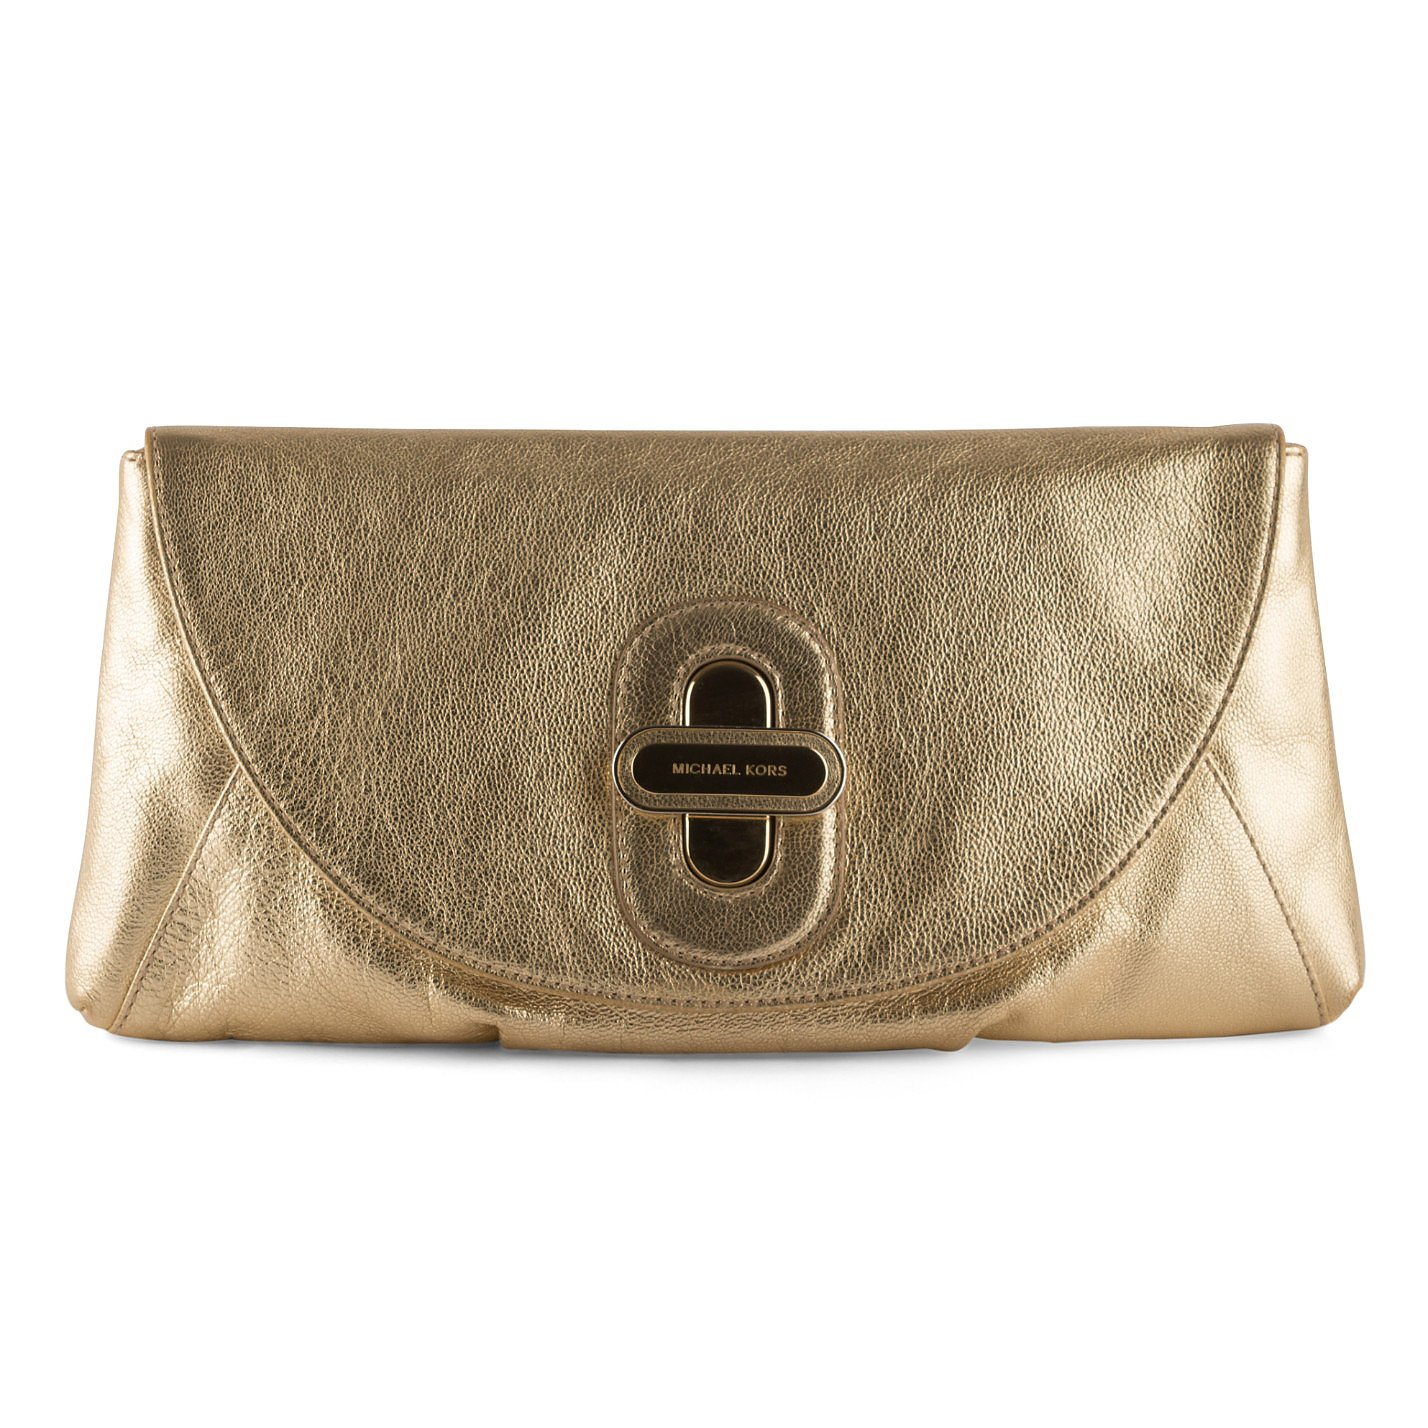 Michael Kors Soft Leather Metallic Clutch